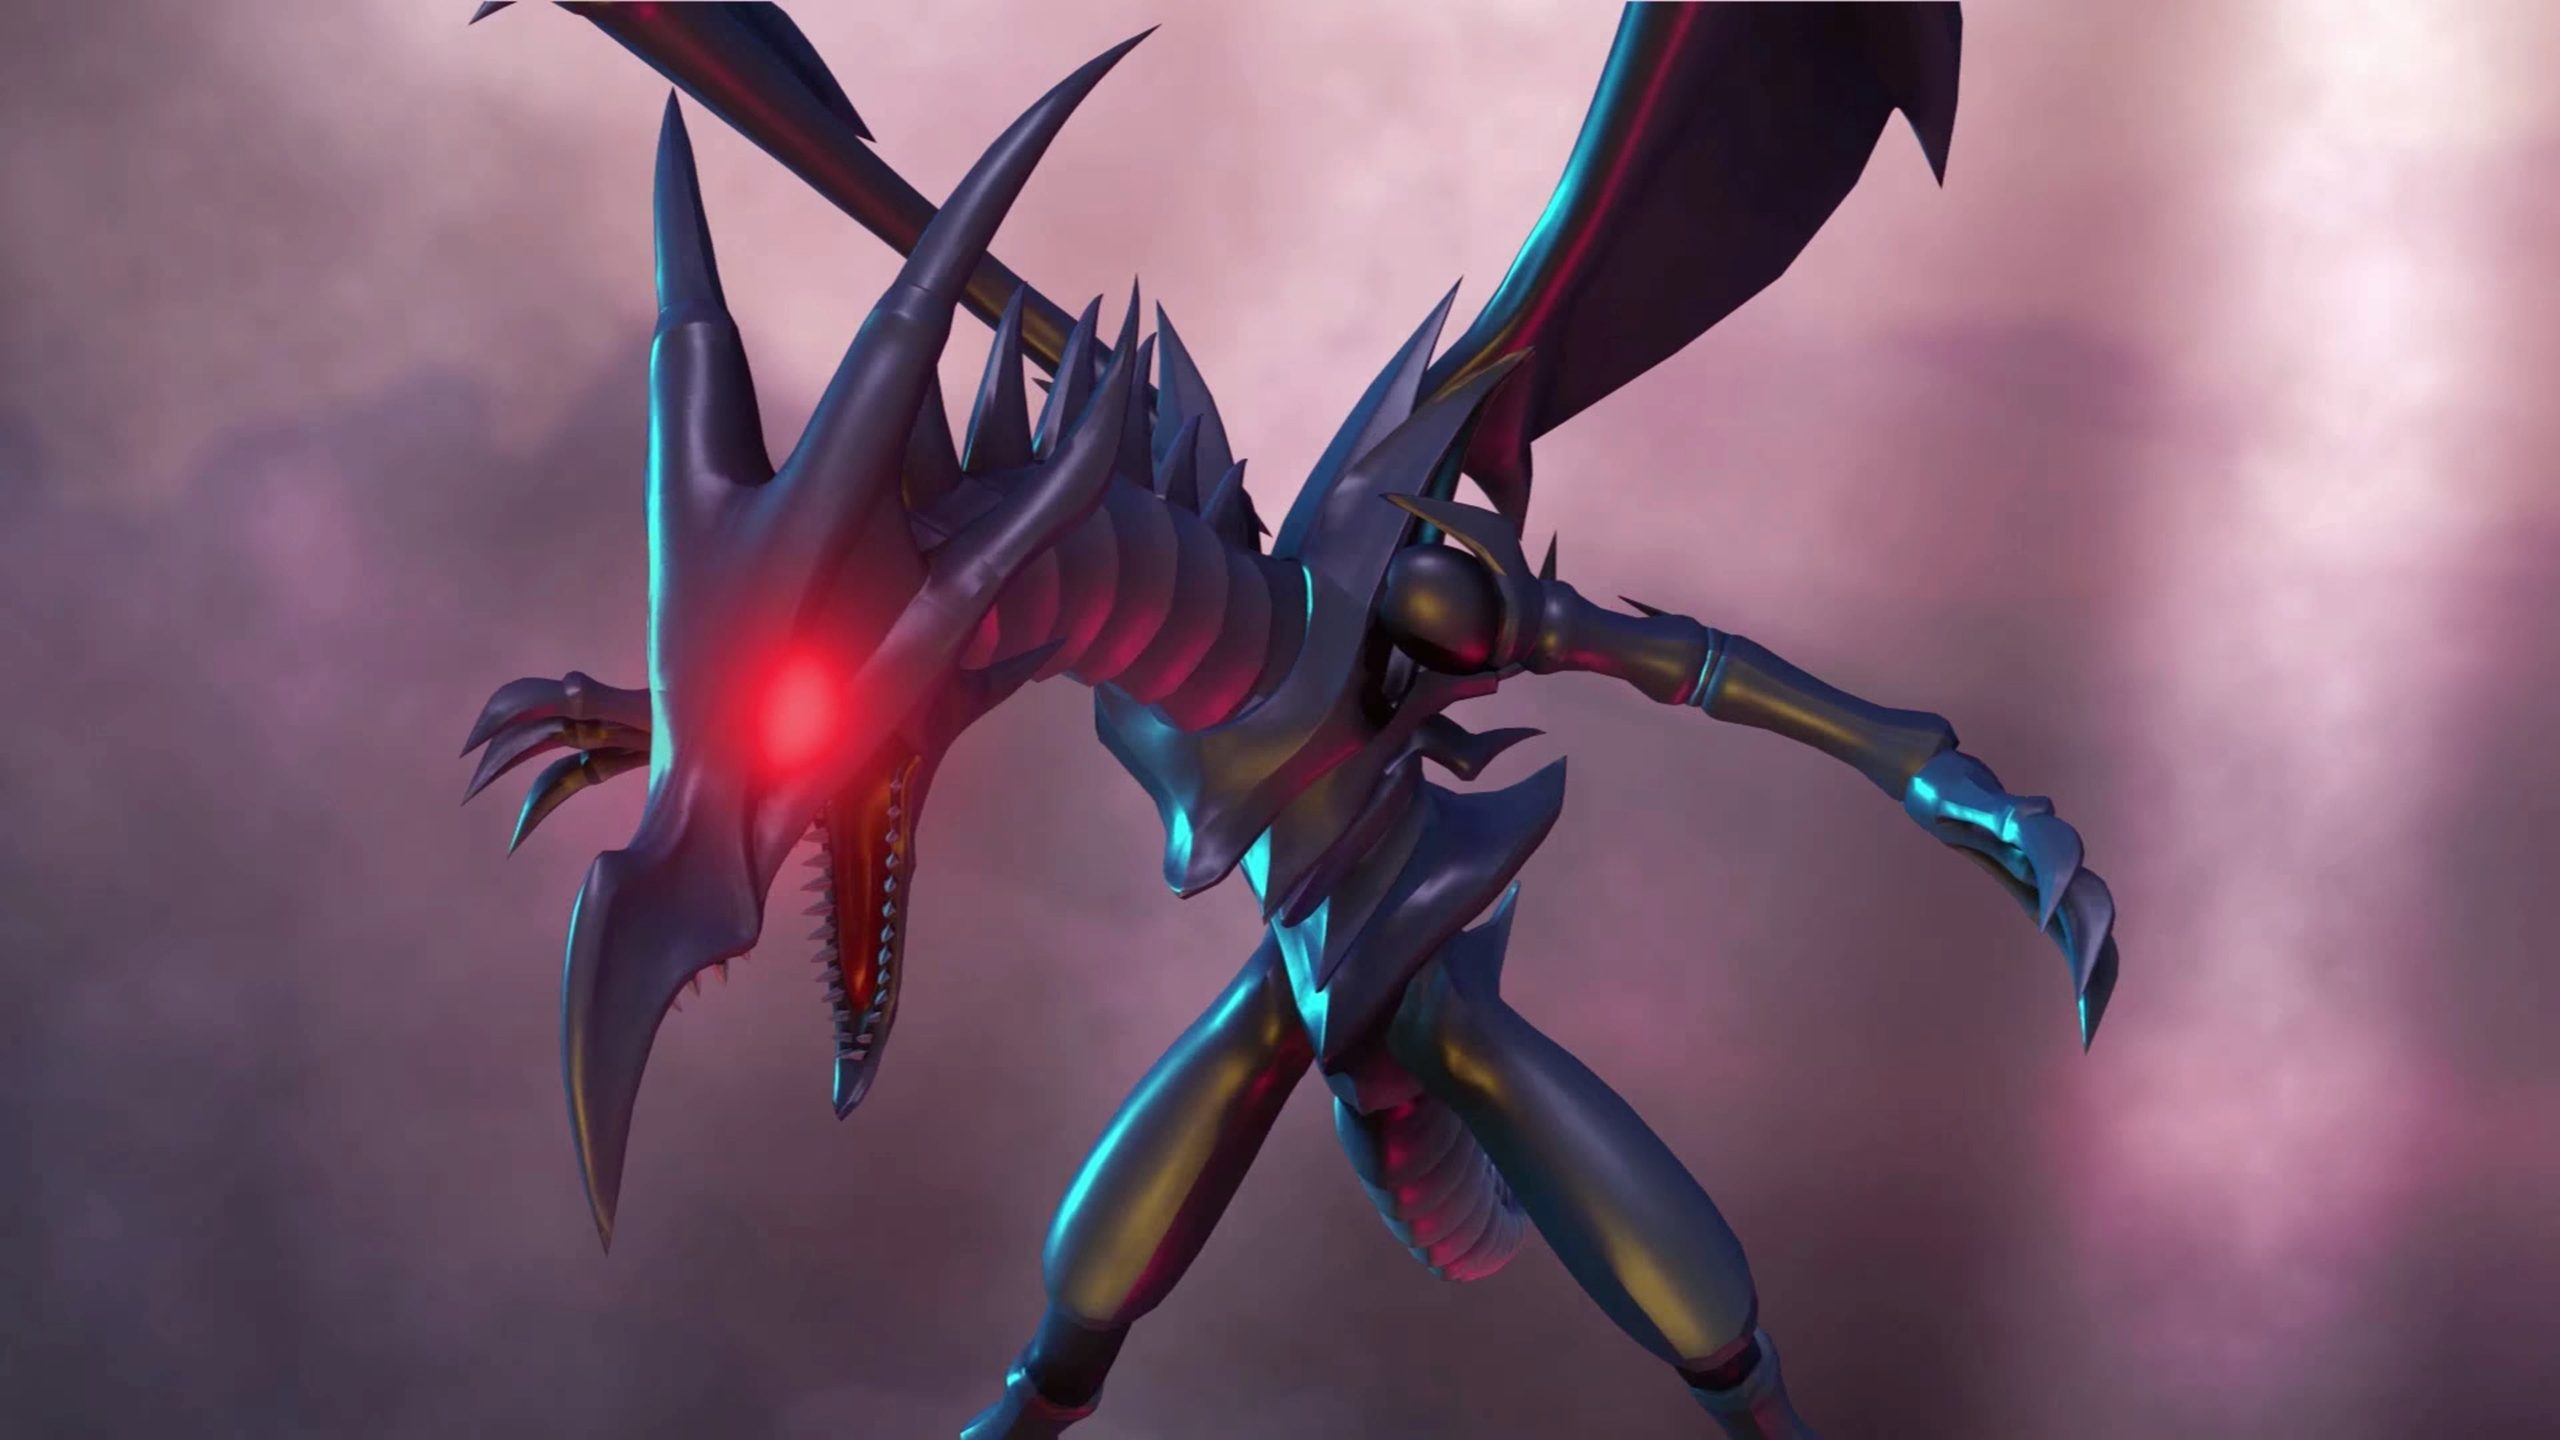 Yu-Gi-Oh-Legacy-Of-The-Duelist-Link-Evolution-Invocation-Dragon-Noir-Aux-Yeux-Rouges